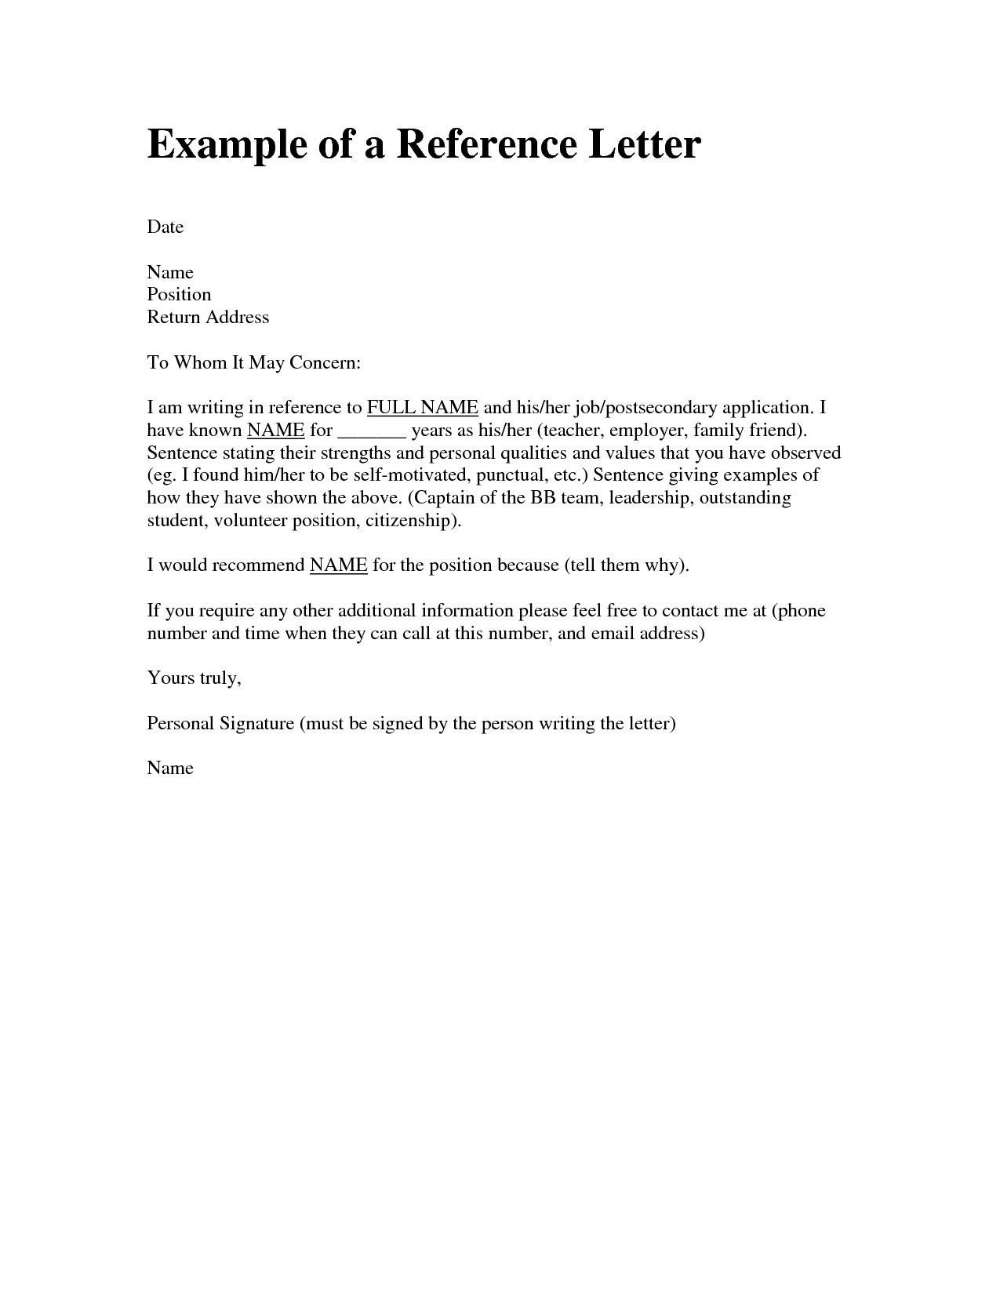 Sample Request Letter For Certificate Of Good Standing intended for dimensions 1000 X 1294